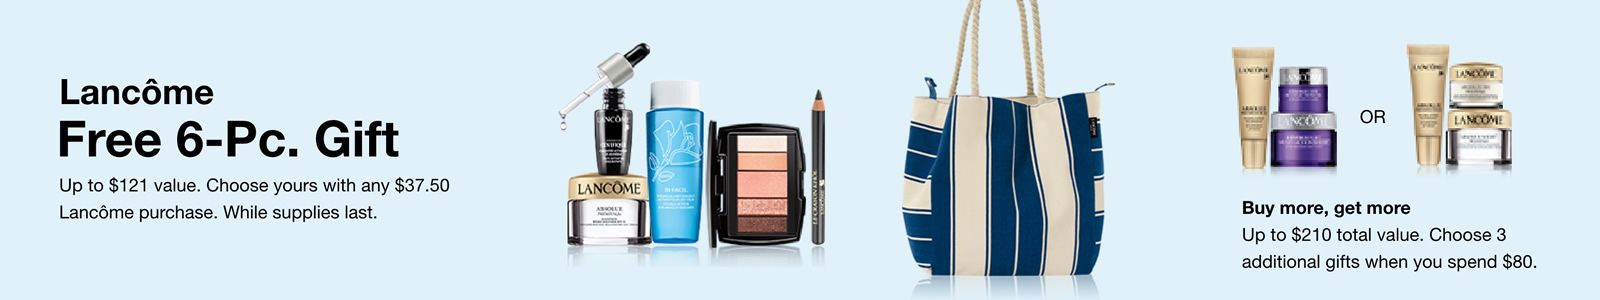 Lancome, Free 6-piece, Gift, Up to $121 value, Choose yours with any $37.50, Lancome purchase, While supplies last, Buy More, Get more Up to $210 total value, Choose 3 additional gifts when you spend $80